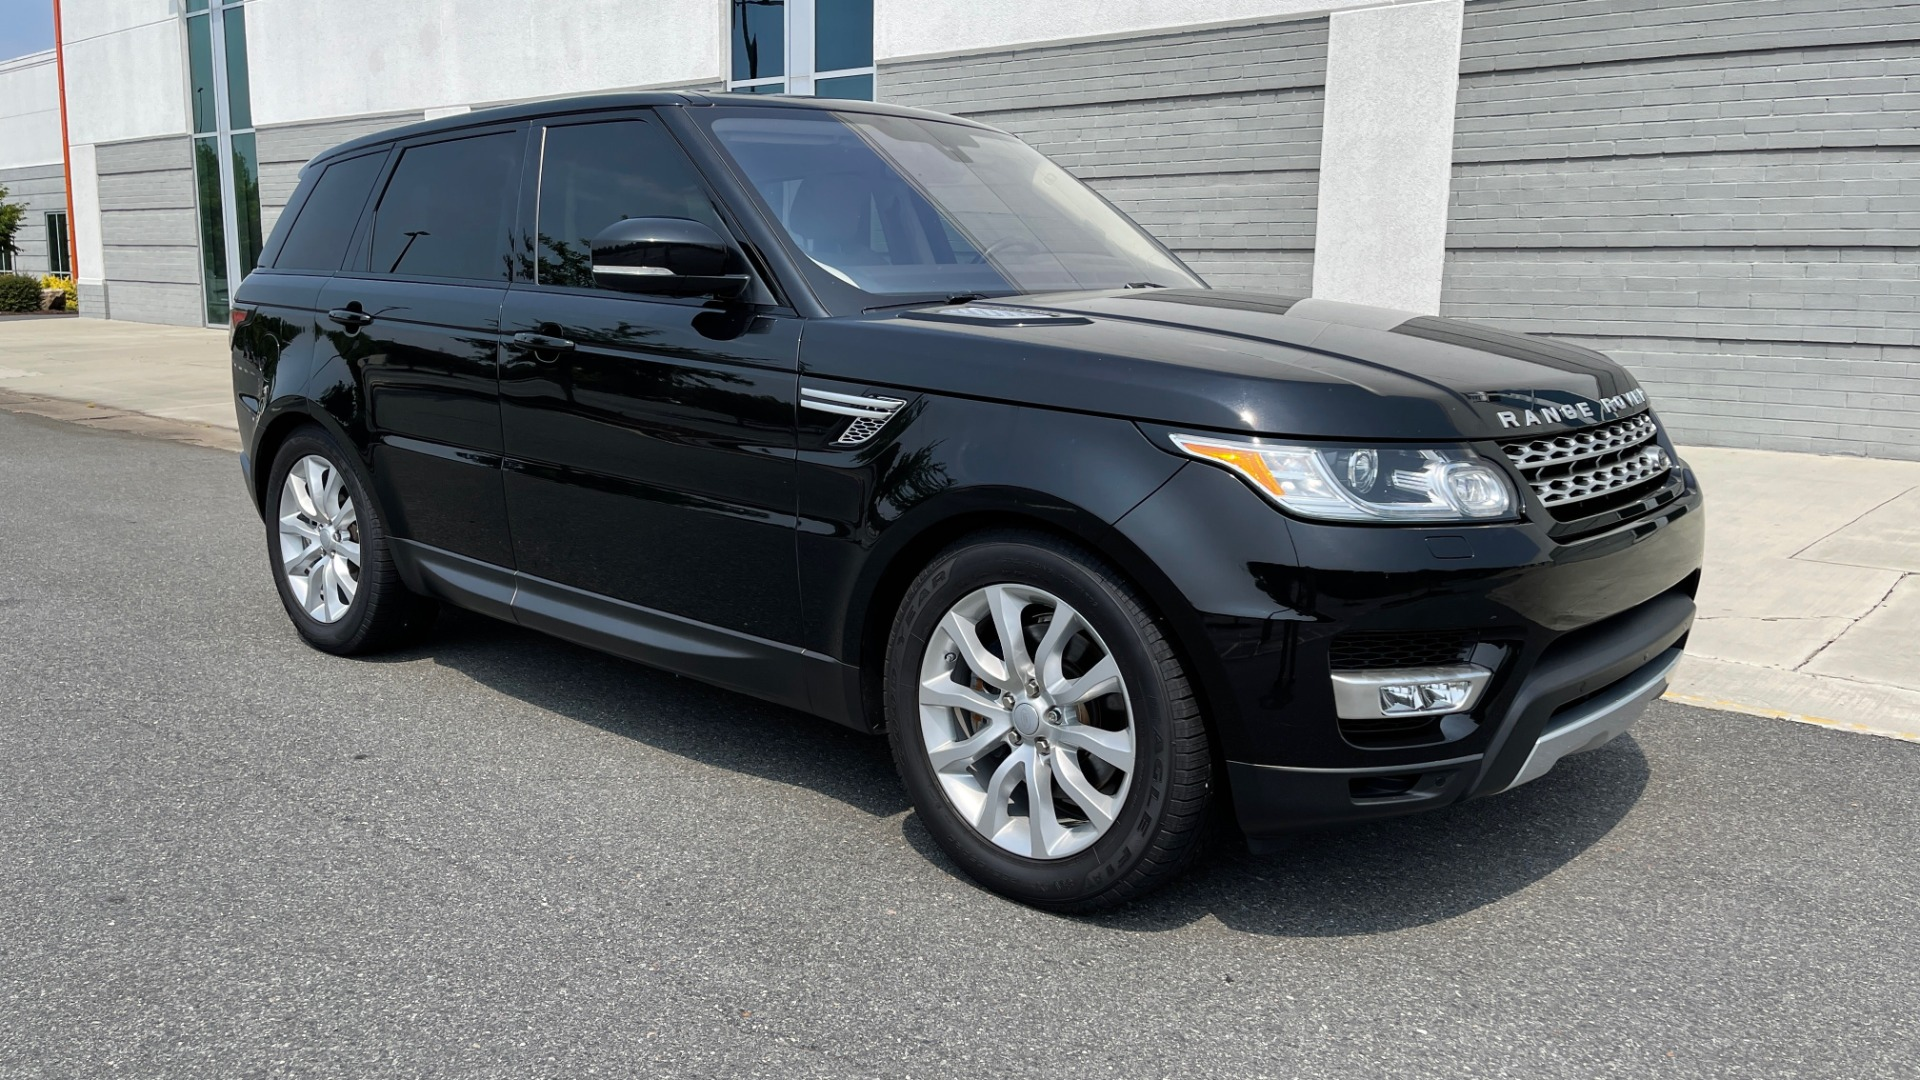 Used 2016 Land Rover RANGE ROVER SPORT V6 HSE / NAV / PANO-ROOF / MERIDIAN / CONSOLE COOLER / CAMERAS for sale $40,995 at Formula Imports in Charlotte NC 28227 7